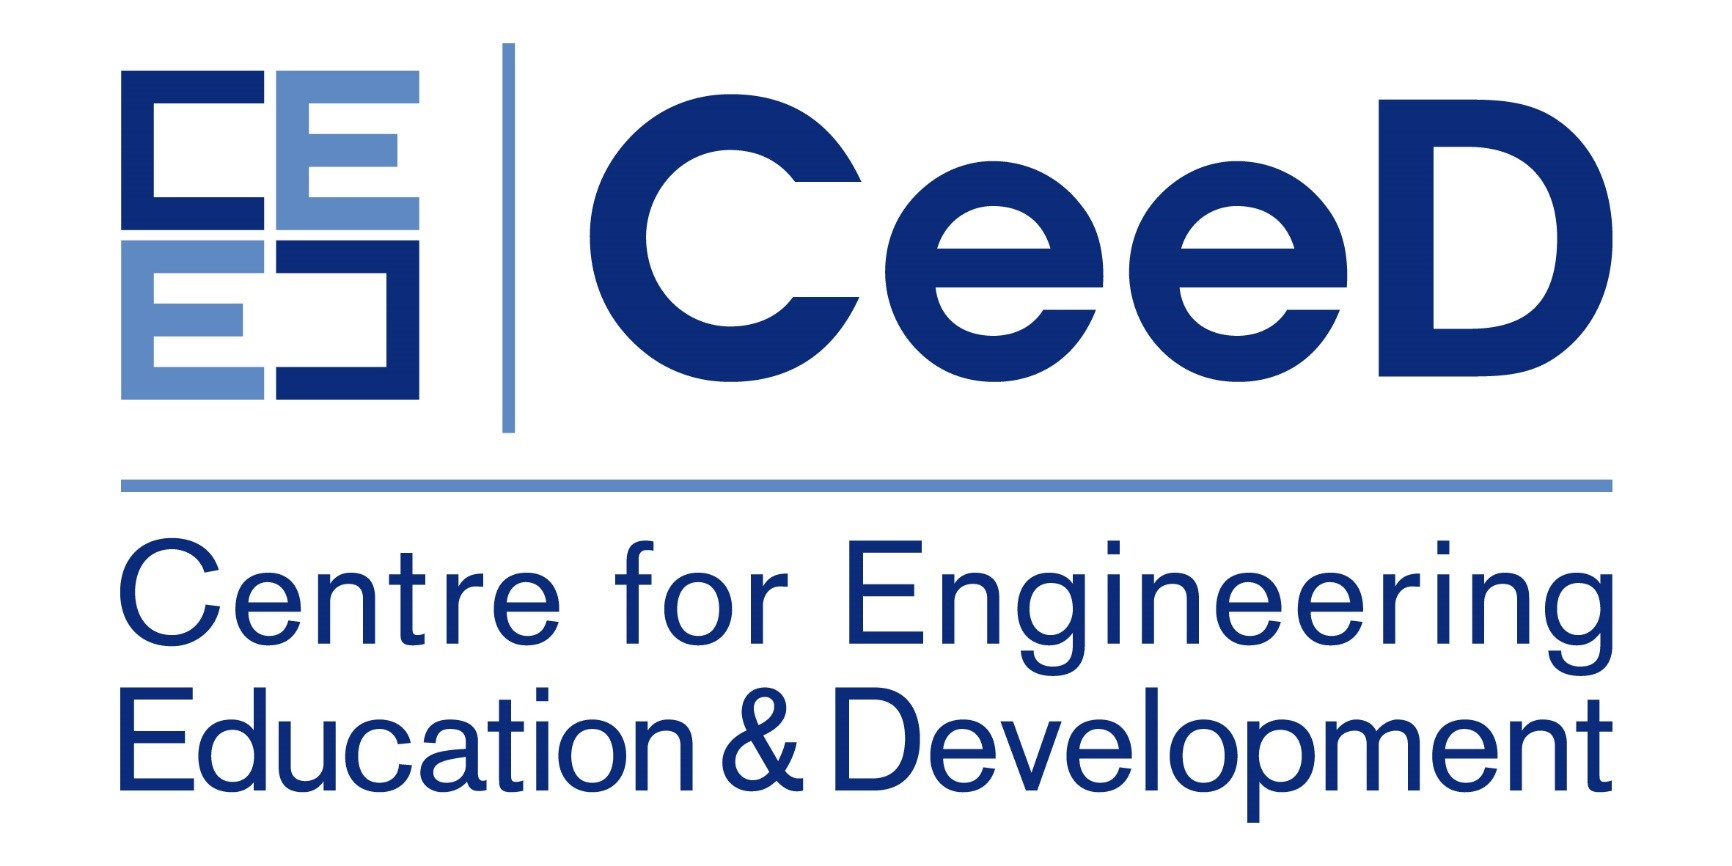 Centre for Engineering and Development